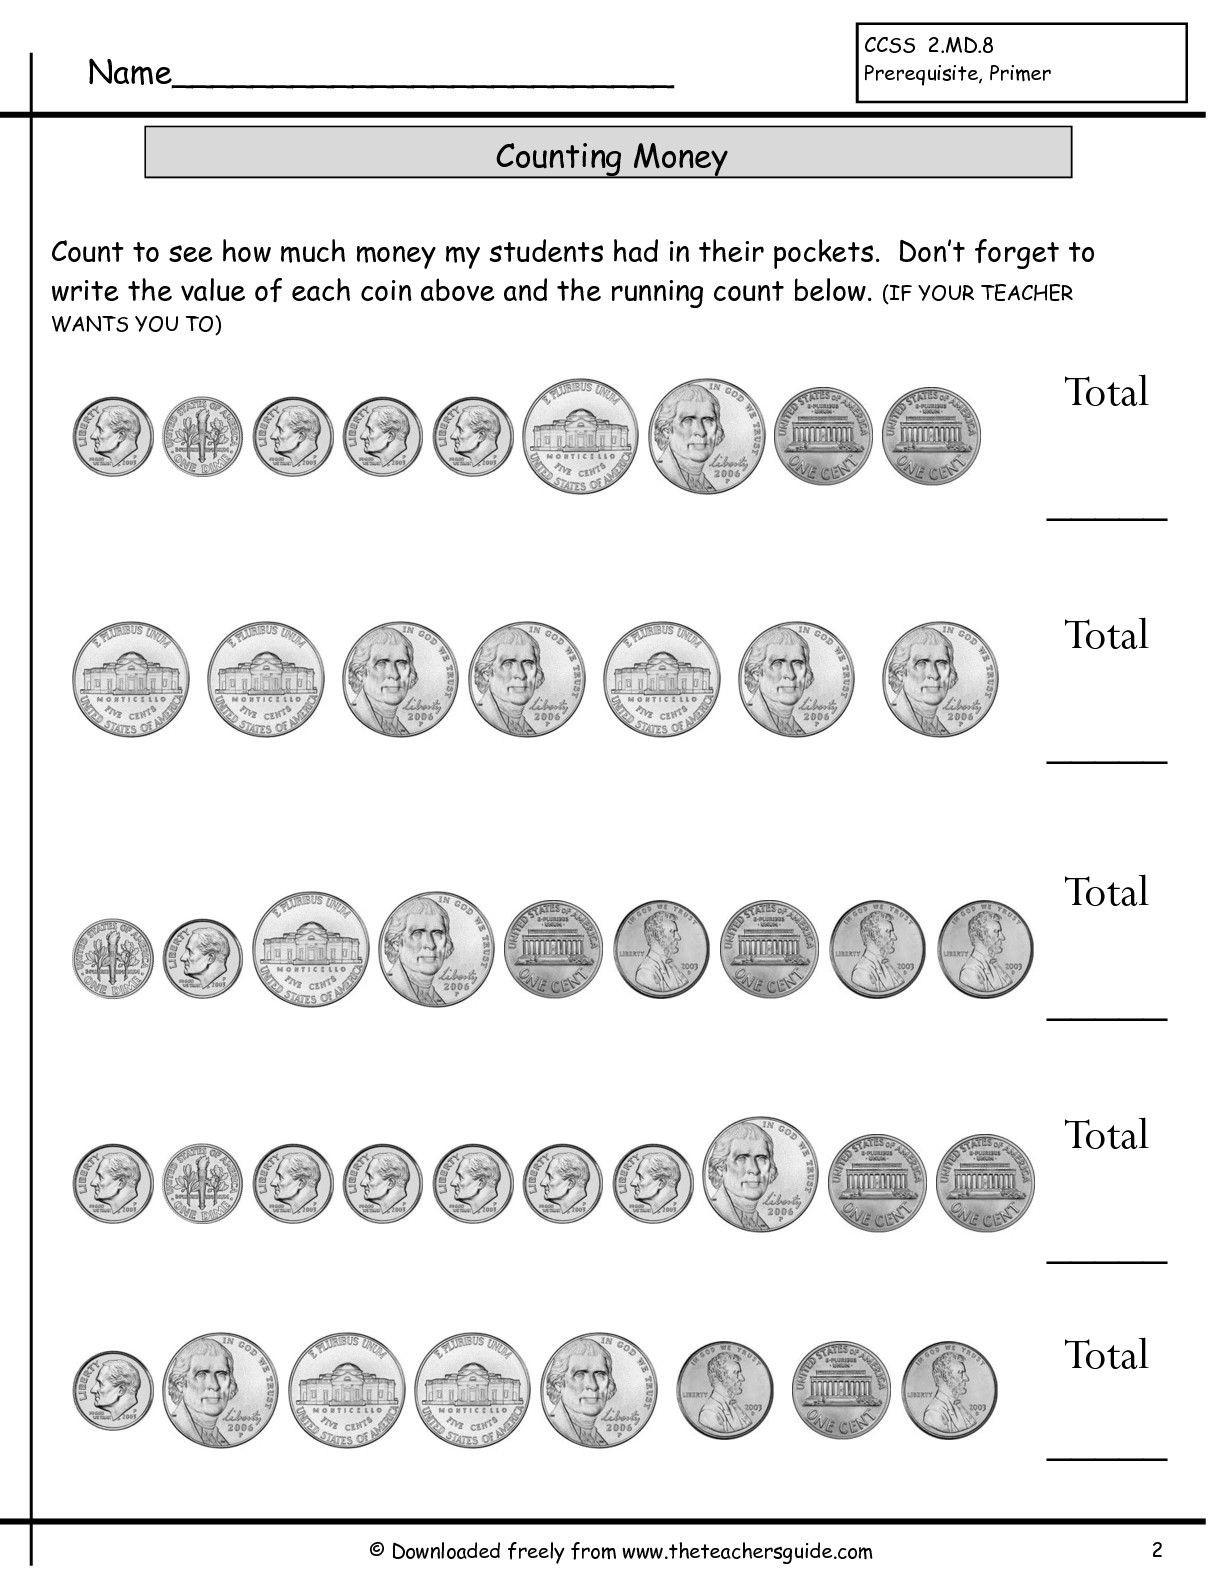 Counting Coins Worksheets First Grade Counting Coins Worksheet with Images